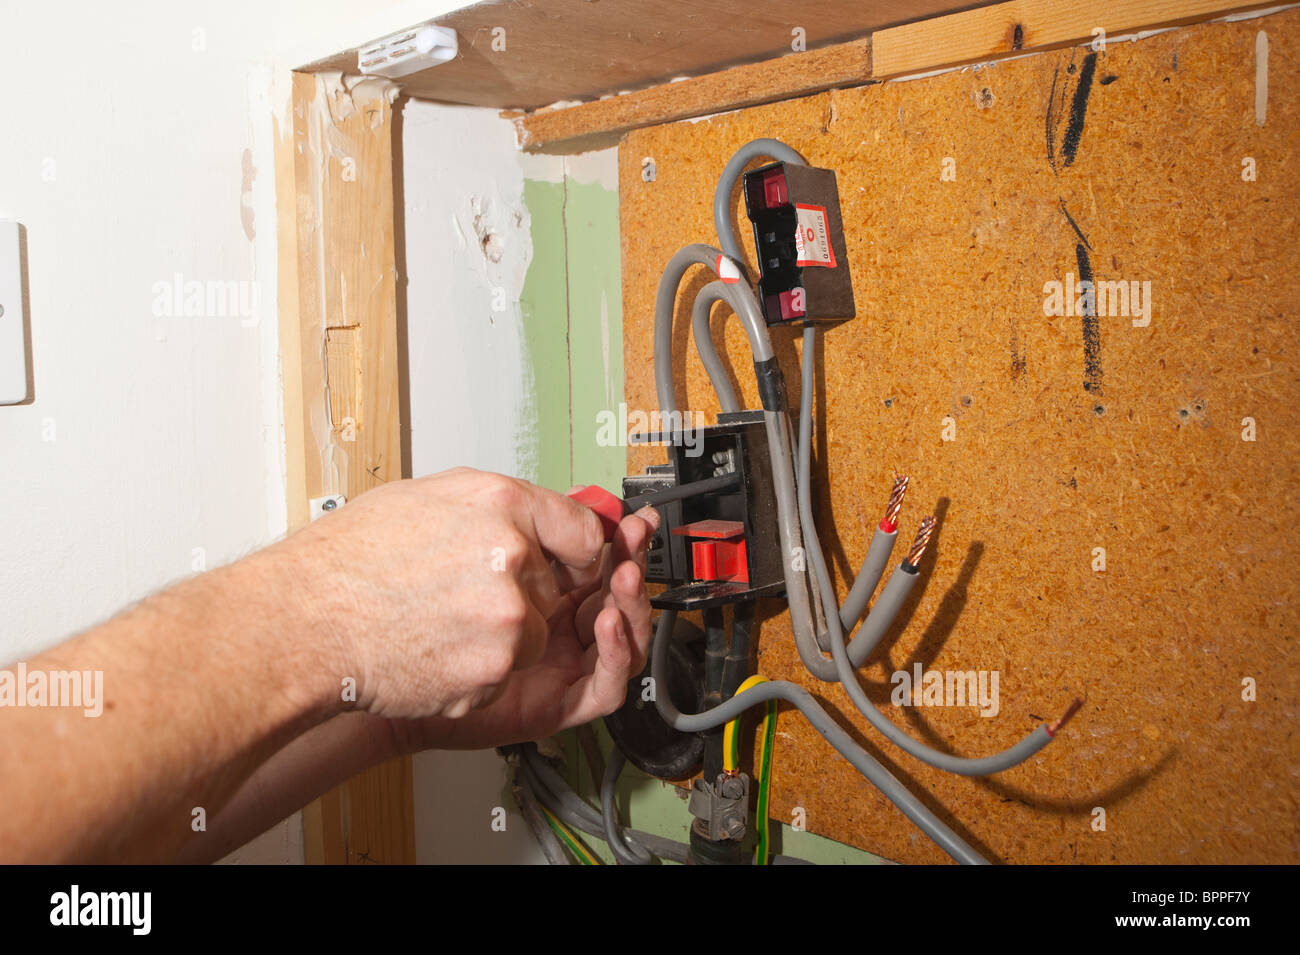 An electrician replacing an electric meter in the Uk - Stock Image